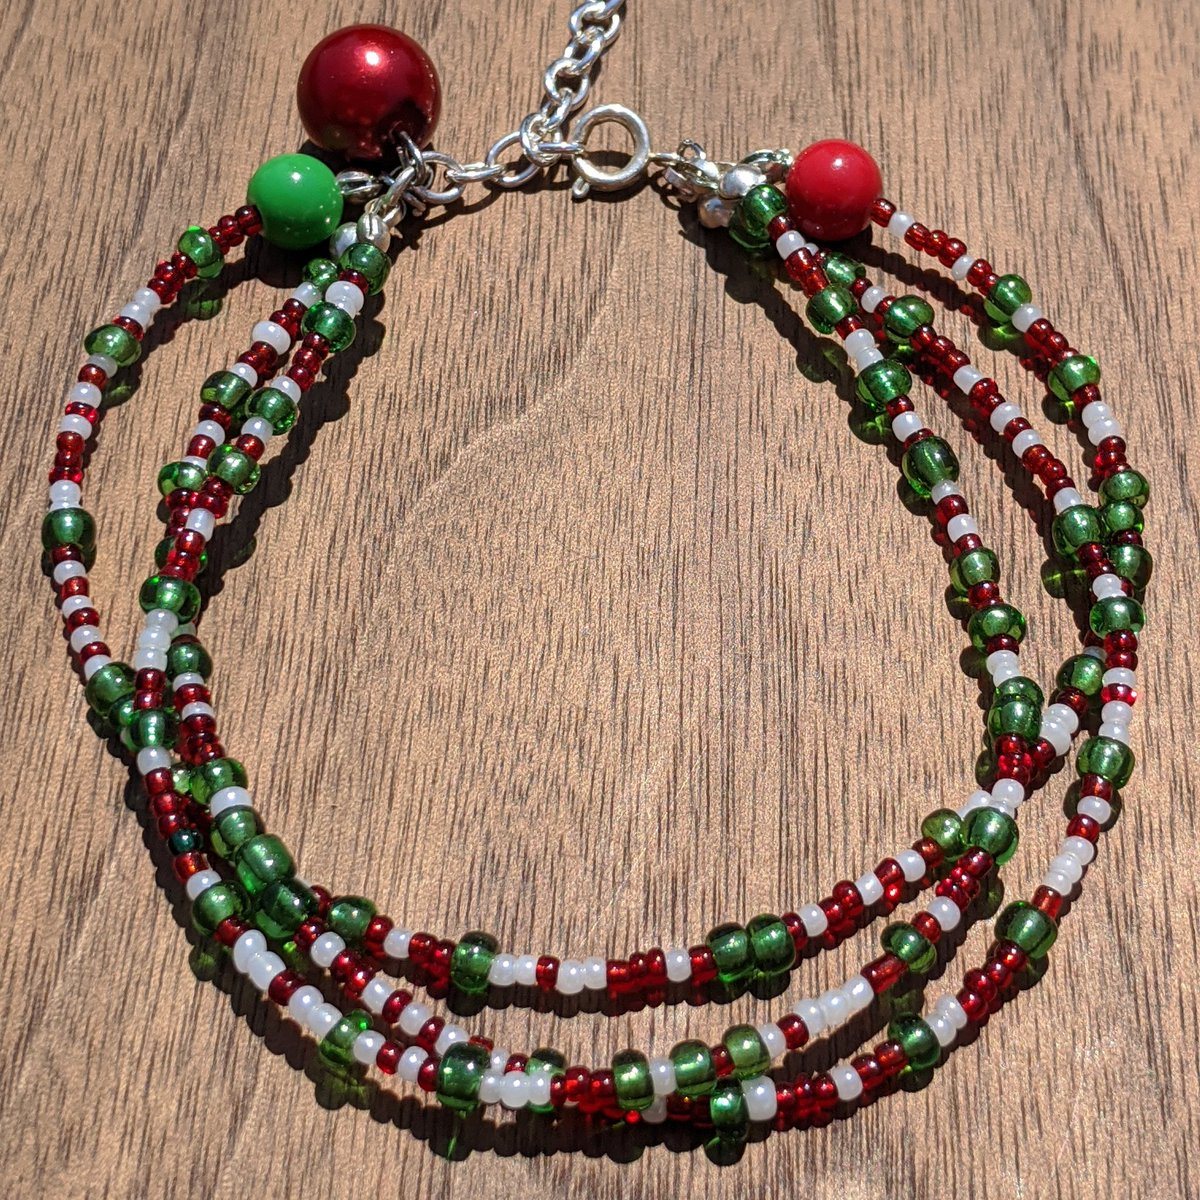 Get this stunning Christmas  3 Strand Bead Bracelet.   Perfect accessory to your Christmas Outfit.   https://www.etsy.com/ca/listing/801245012/adjustable-christmas-3-strand-seed-bead …  #bracelets #christmasoutfit #merrychristmas #christmasgift #christmasinjulypic.twitter.com/SyvJ4NN6kw